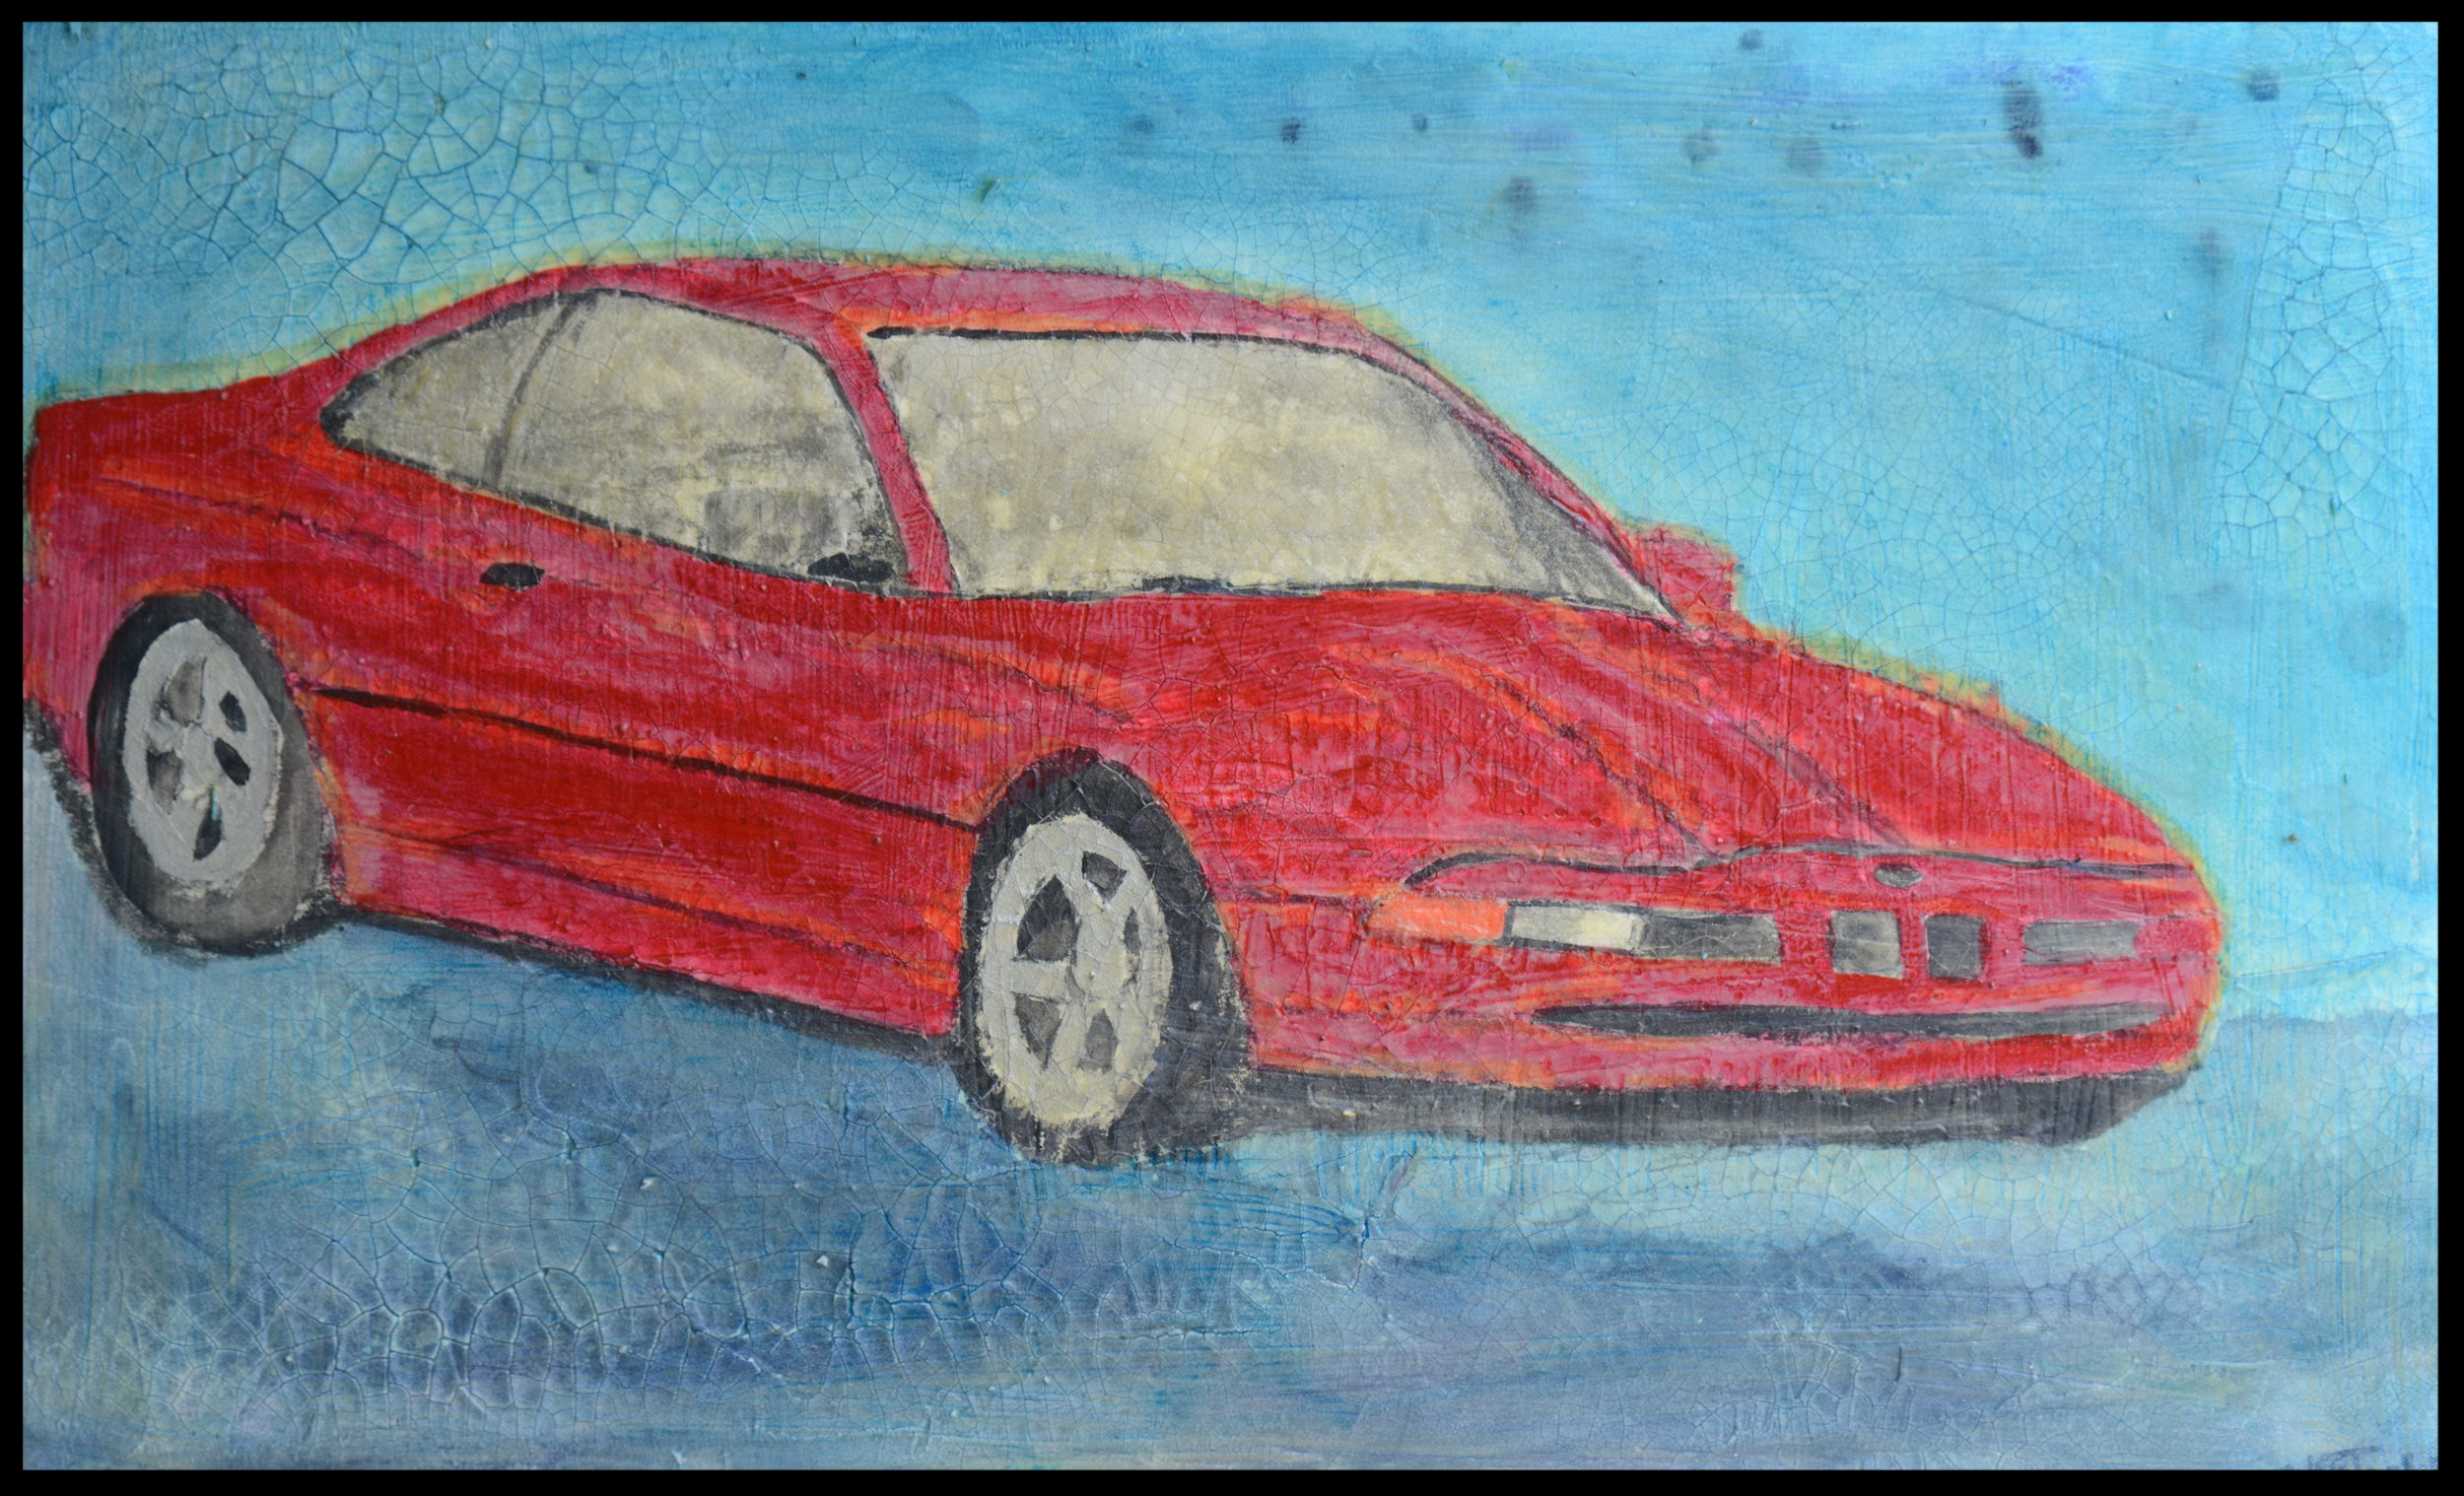 "BEEMER ME UP - 17 1/2""h x 28 3/4""w x 3 3/4""wAcrylic & Mixed Media on Canvas"